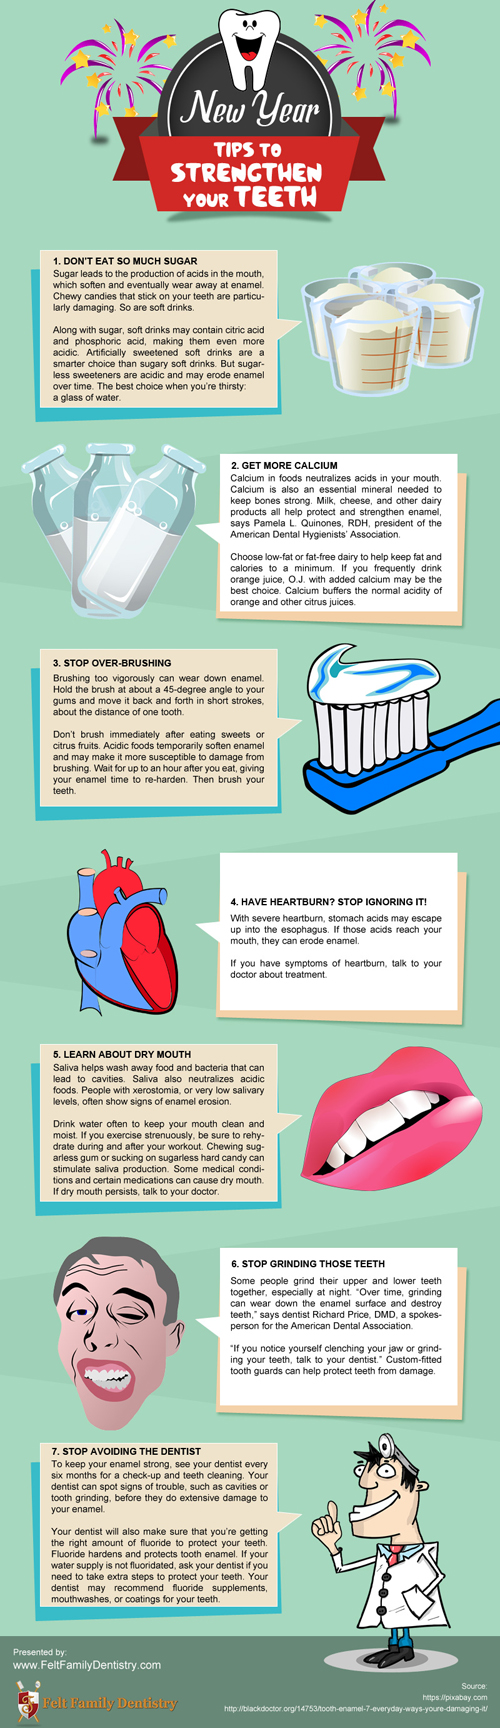 New Year Tips to Strengthen Your Teeth [infographic]